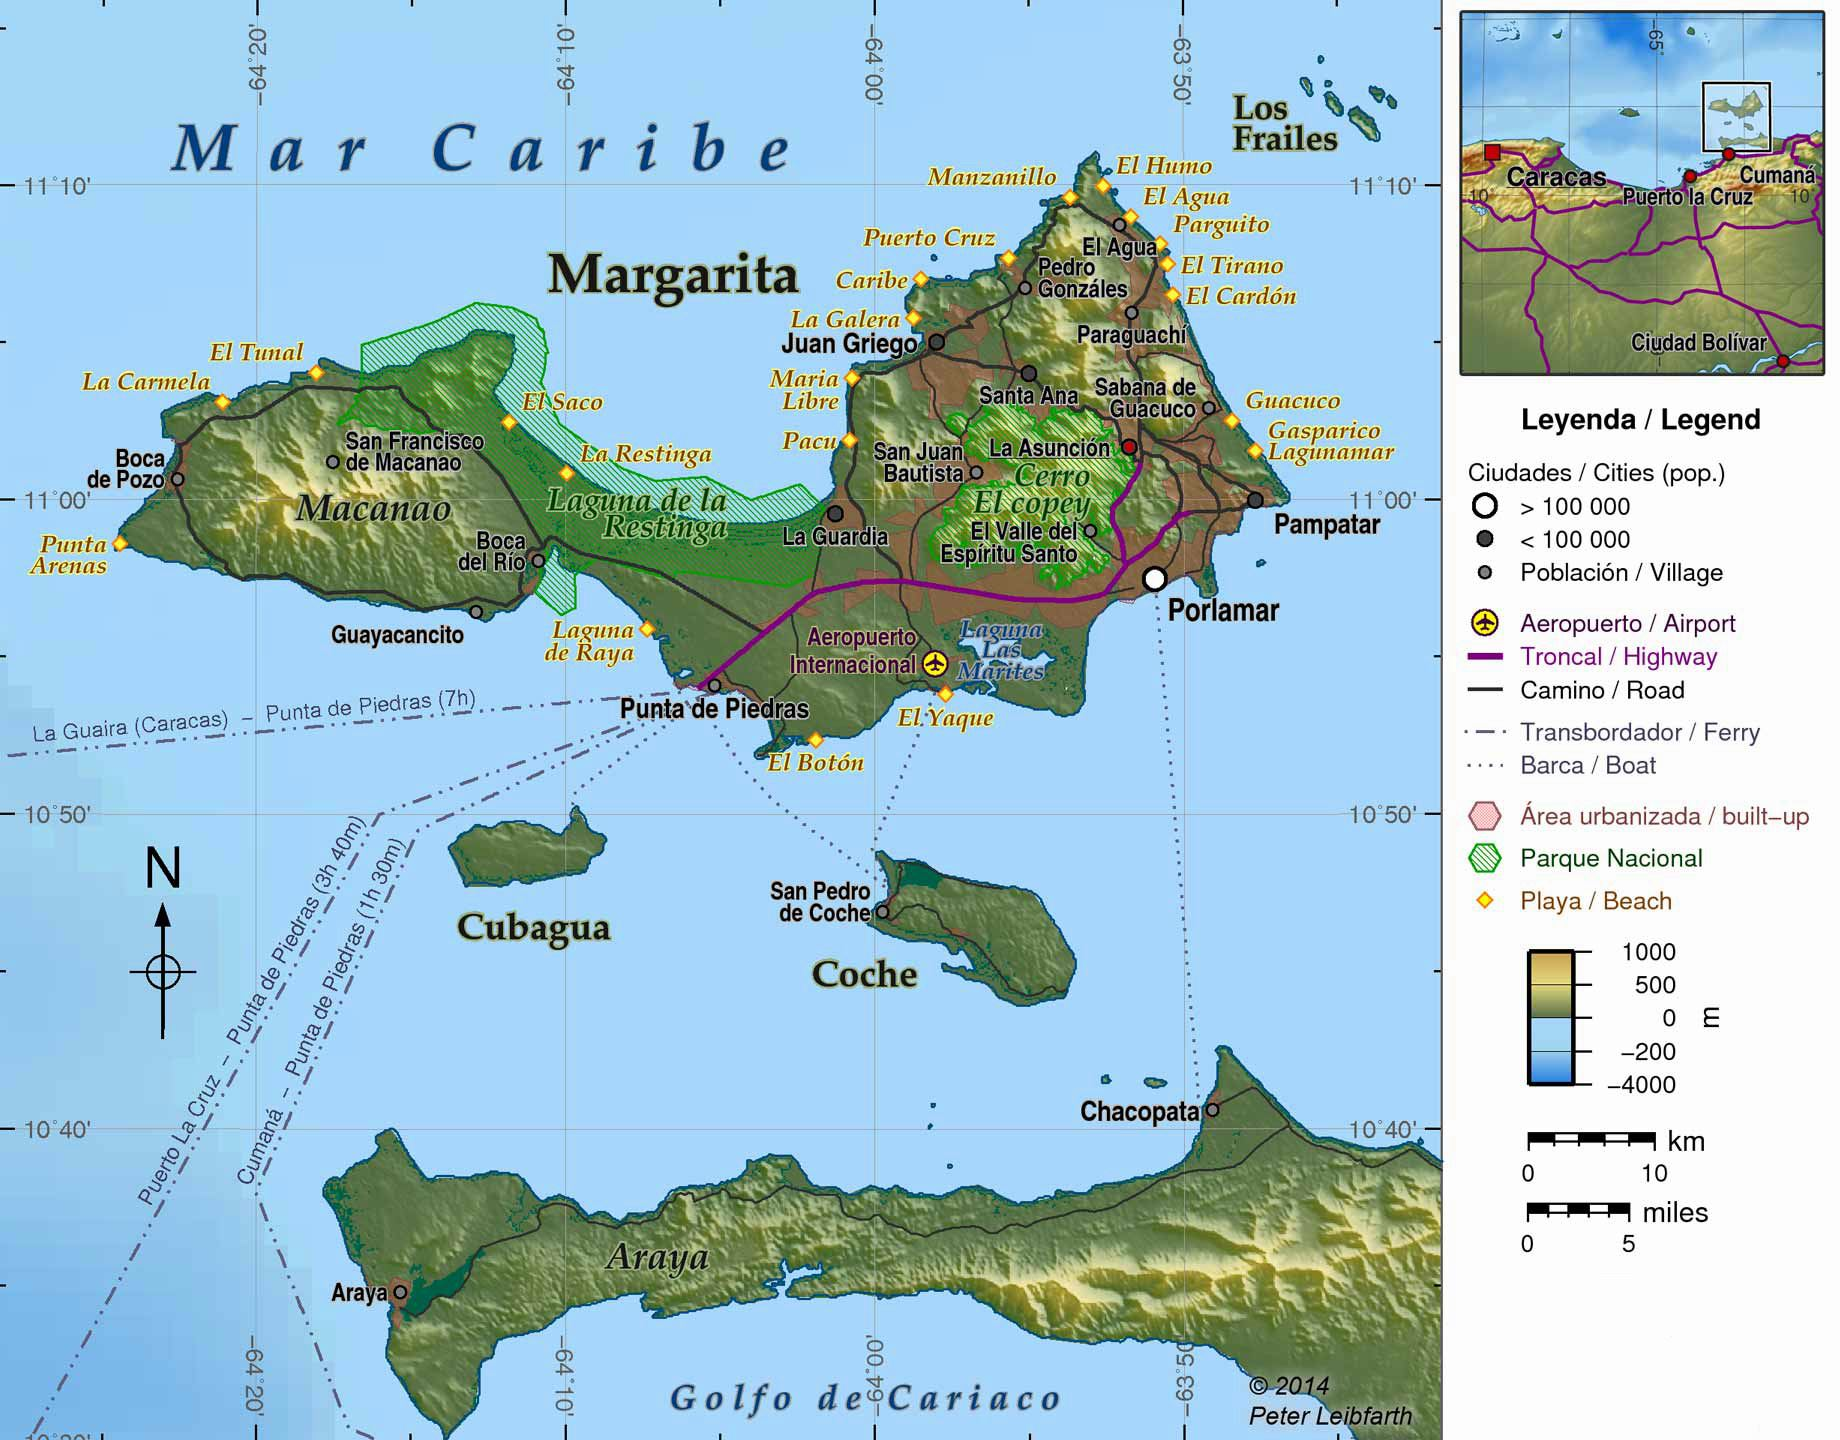 Large Isla Margarita Maps for Free Download and Print | High ... on puerto cabello venezuela map, simple venezuela map, maracaibo venezuela map, porlamar venezuela map, merida venezuela map, ciudad bolivar venezuela map, valencia venezuela map, barquisimeto venezuela map, argentina and venezuela map, paria peninsula venezuela map, venezuela river map, los roques venezuela map, venezuela colombia map, caracas venezuela map, punto fijo venezuela map, venezuela south america map, la guaira venezuela map, puerto la cruz venezuela map, aruba venezuela map, venezuela on a map,